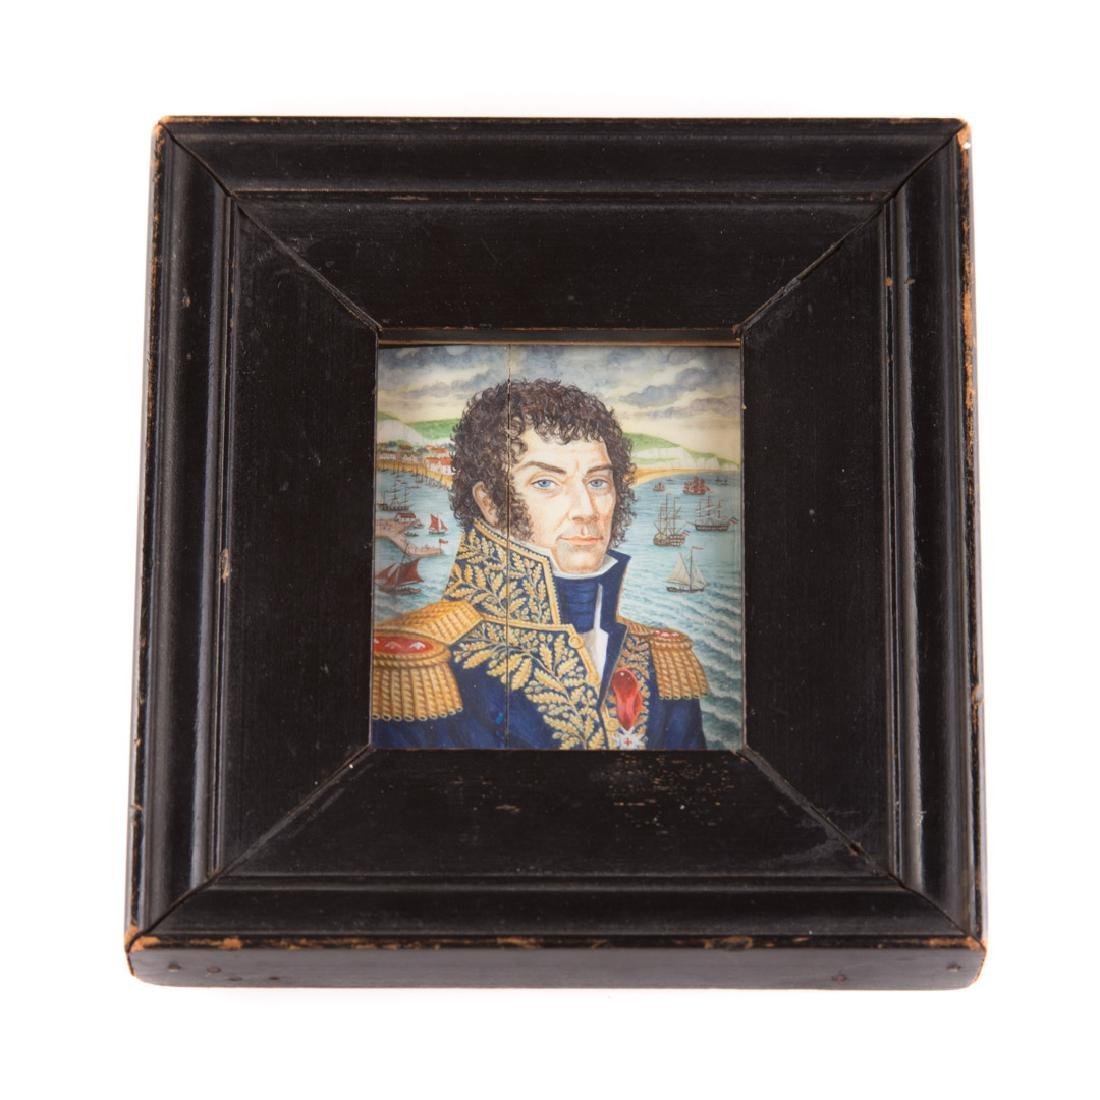 Chinese Export miniature naval officer portrait